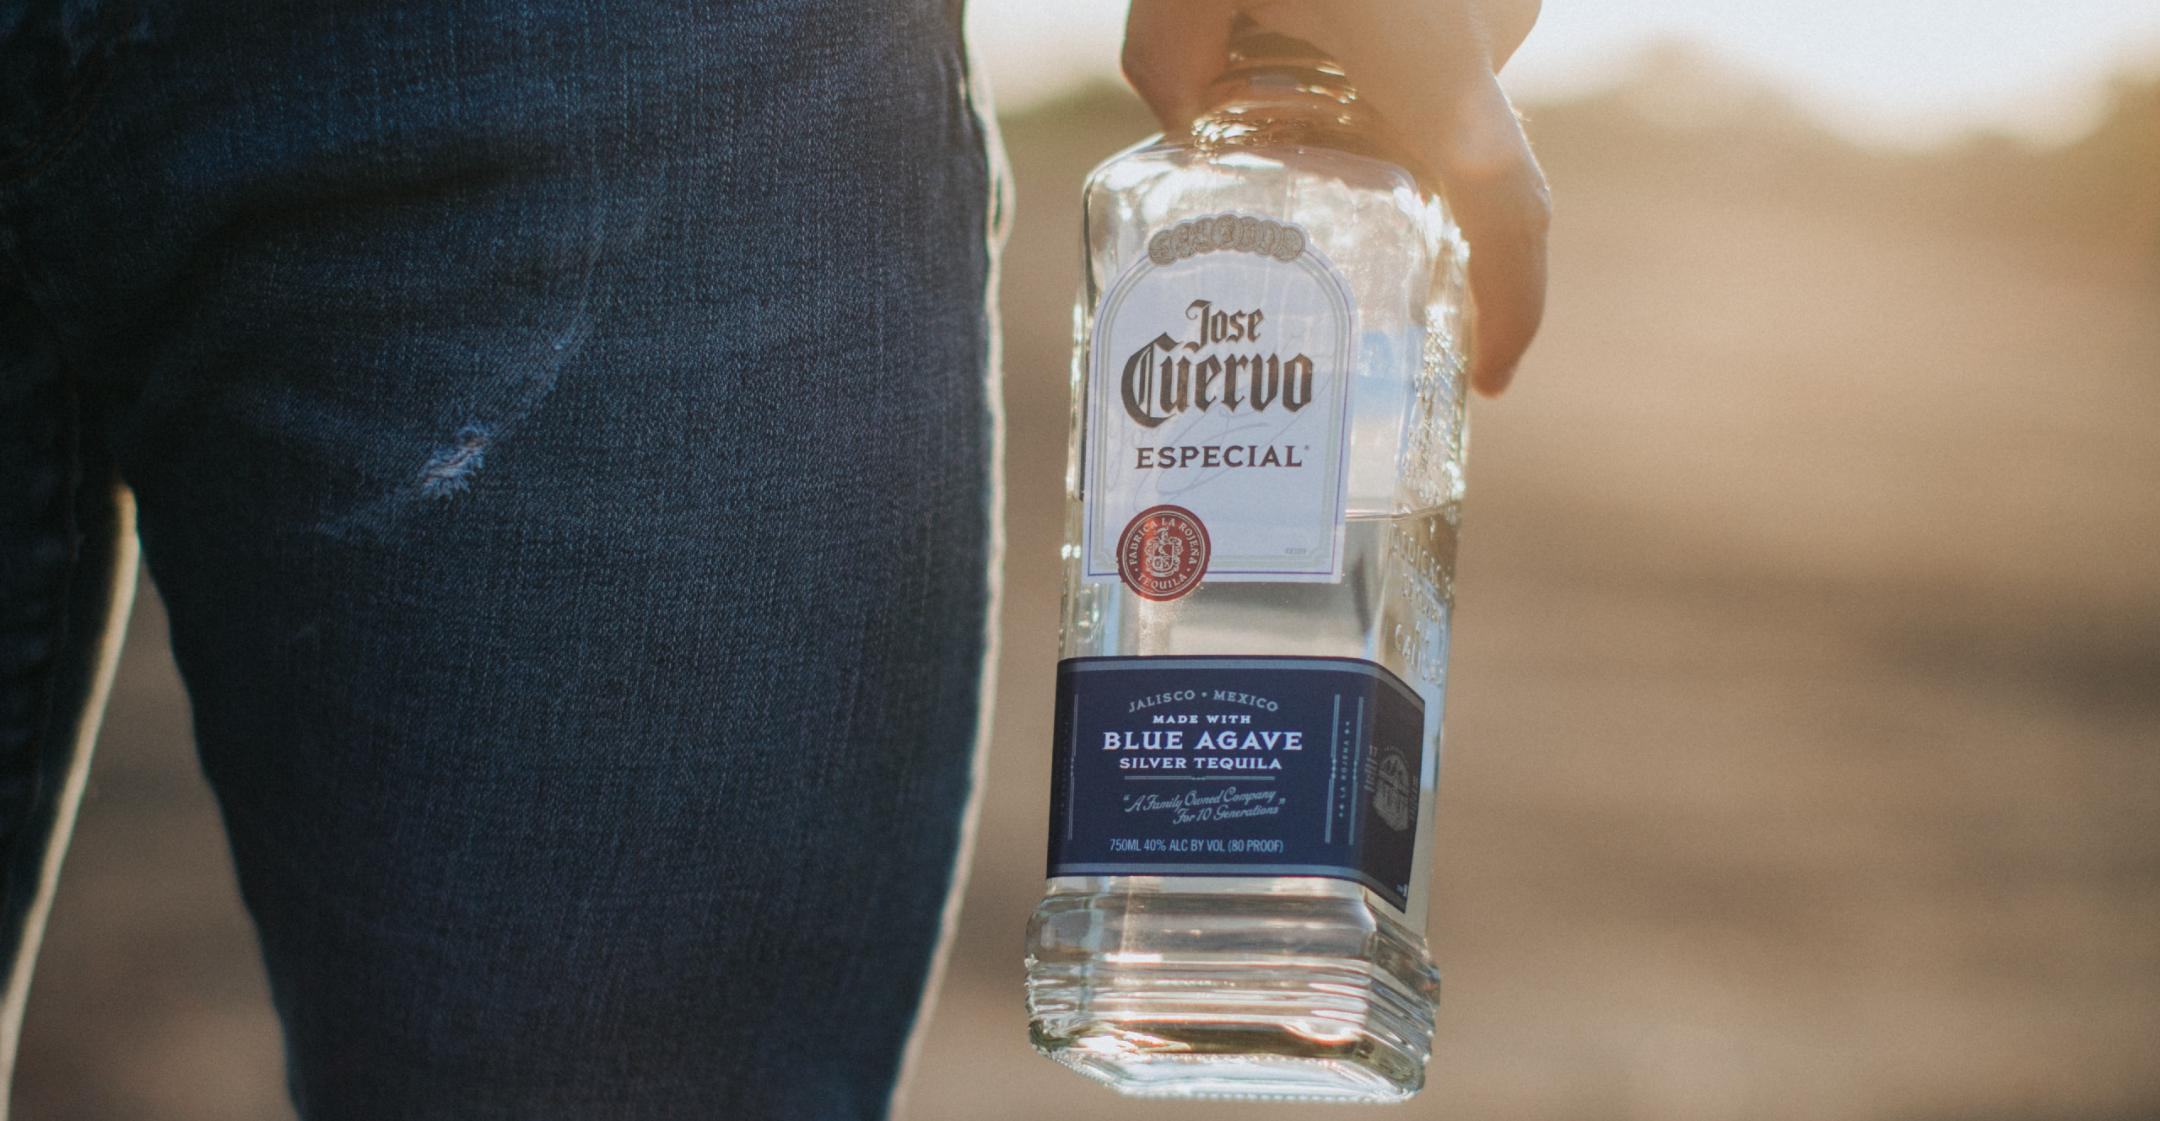 jose cuervo looking to hire new talent perks include free trip mexico